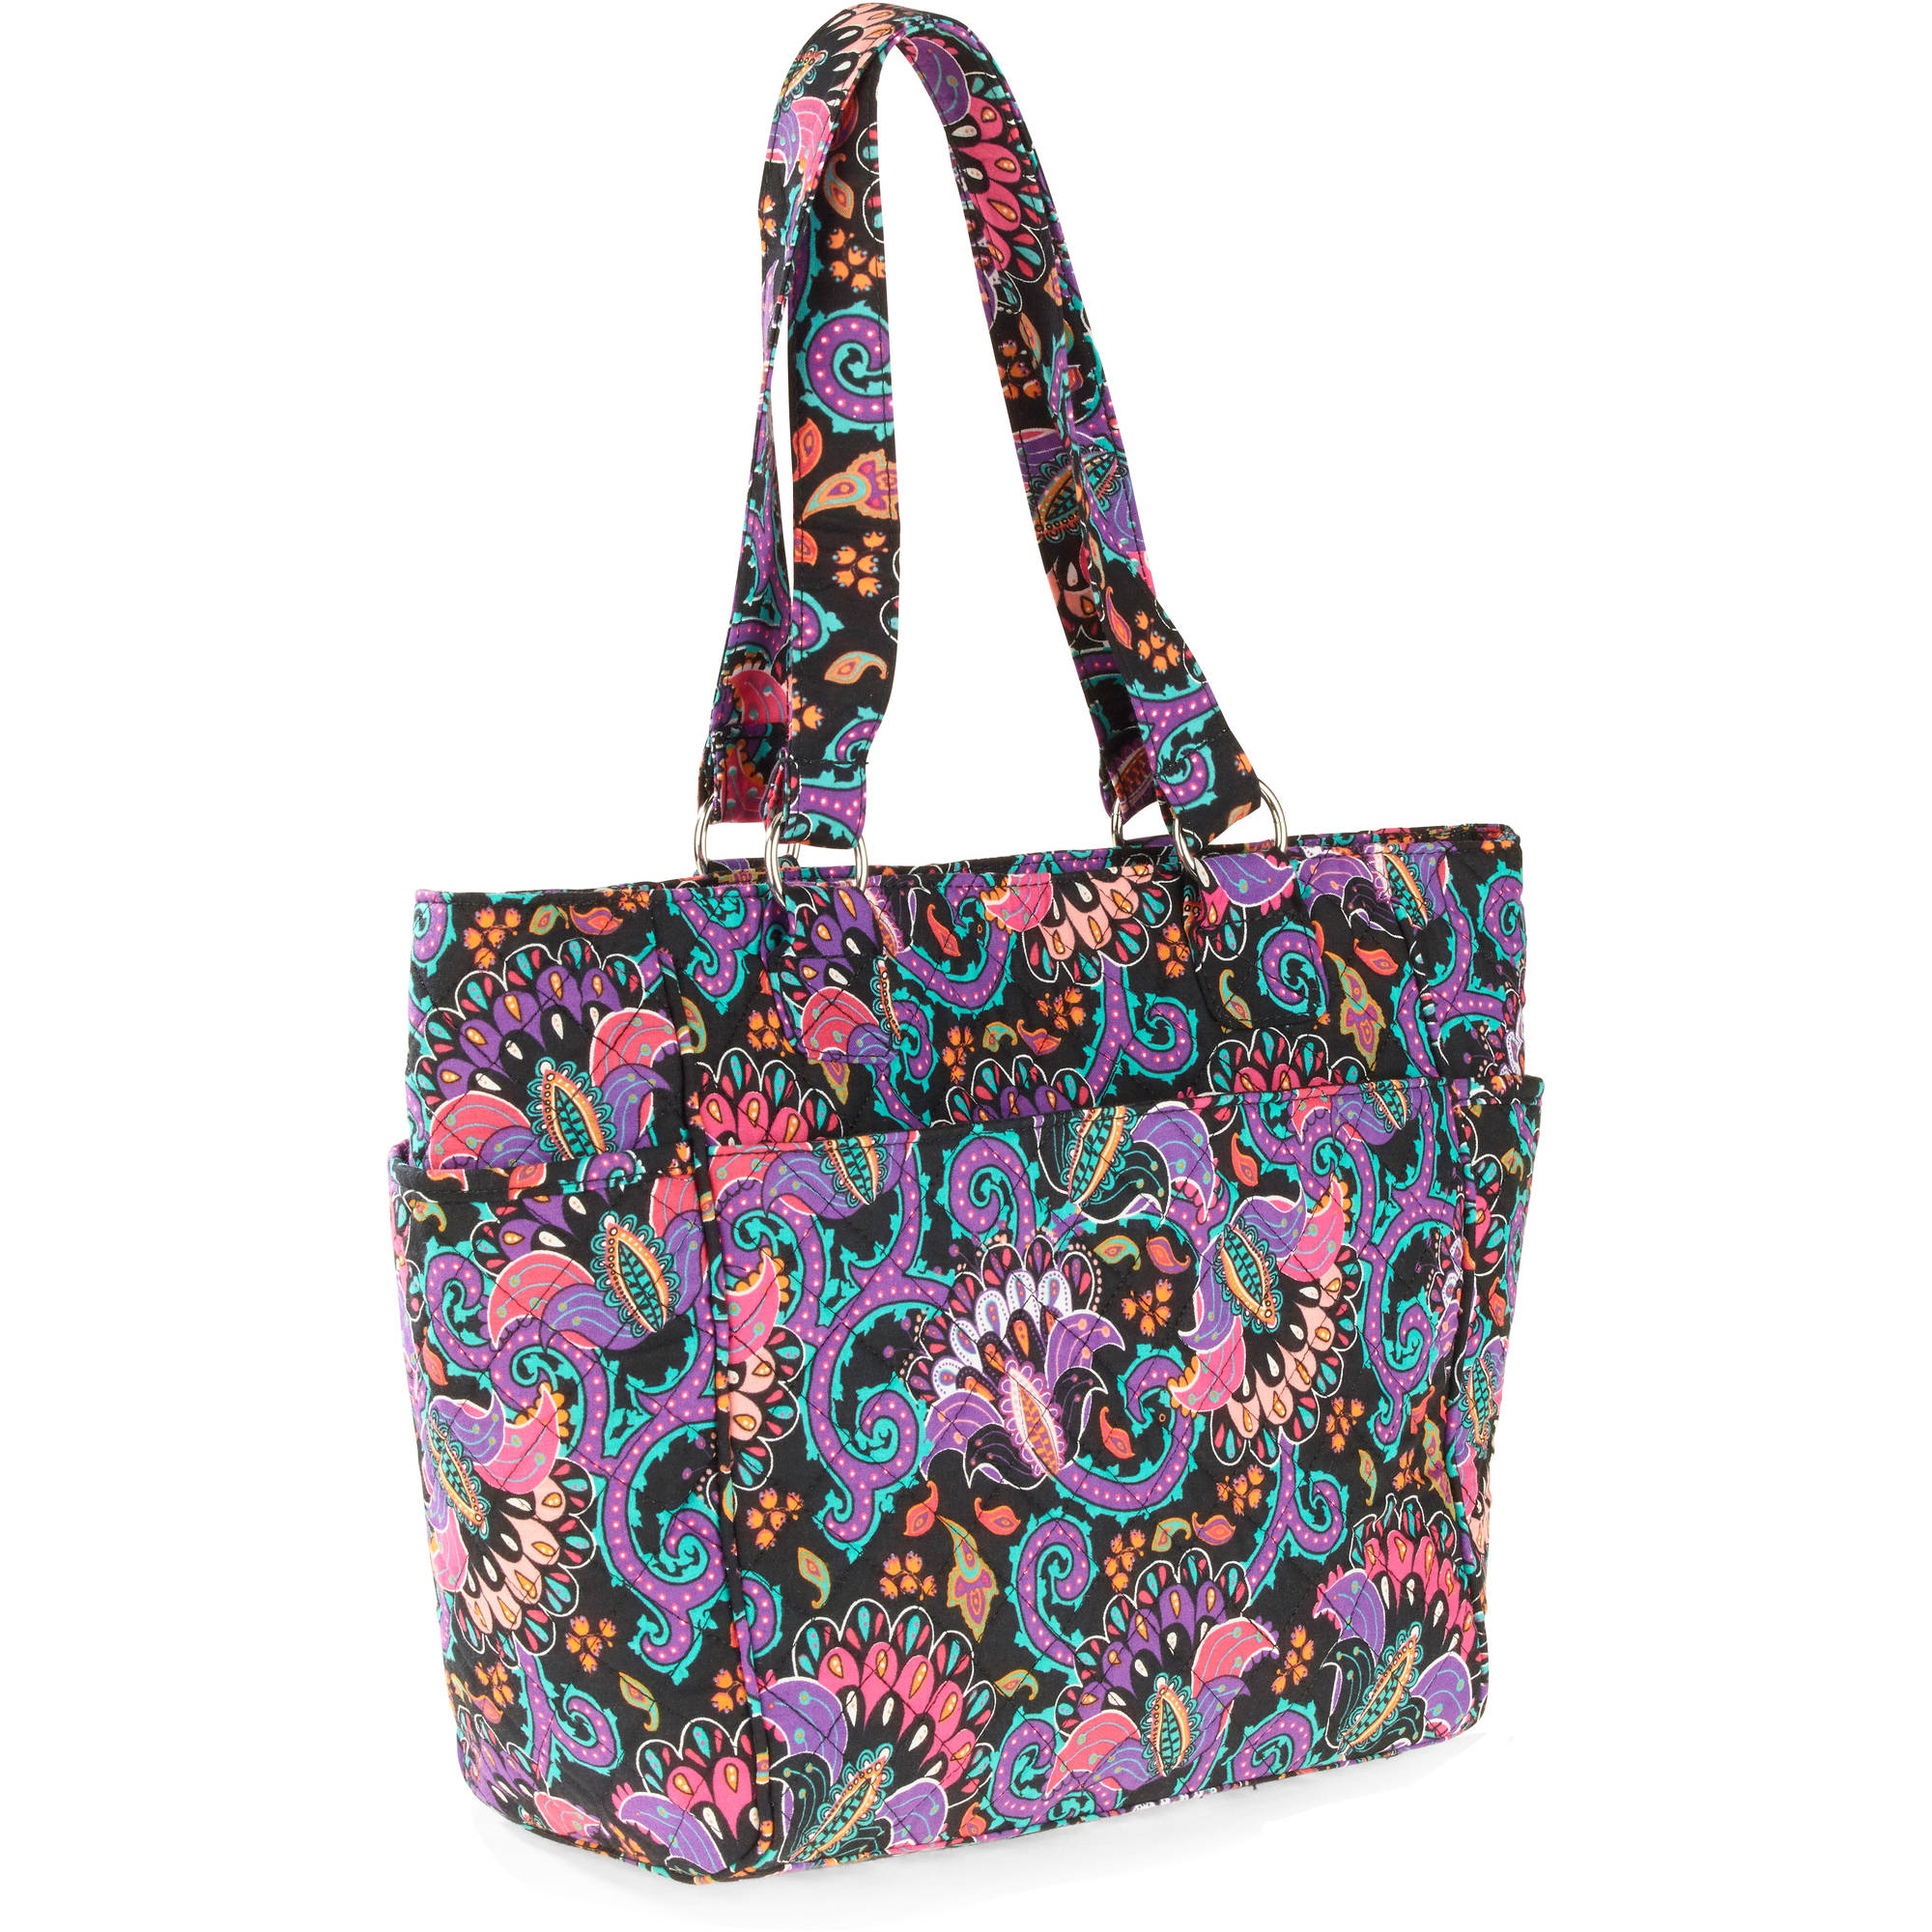 Waverly Women's Tote Quilt bag - Walmart.com : quilt tote bag - Adamdwight.com